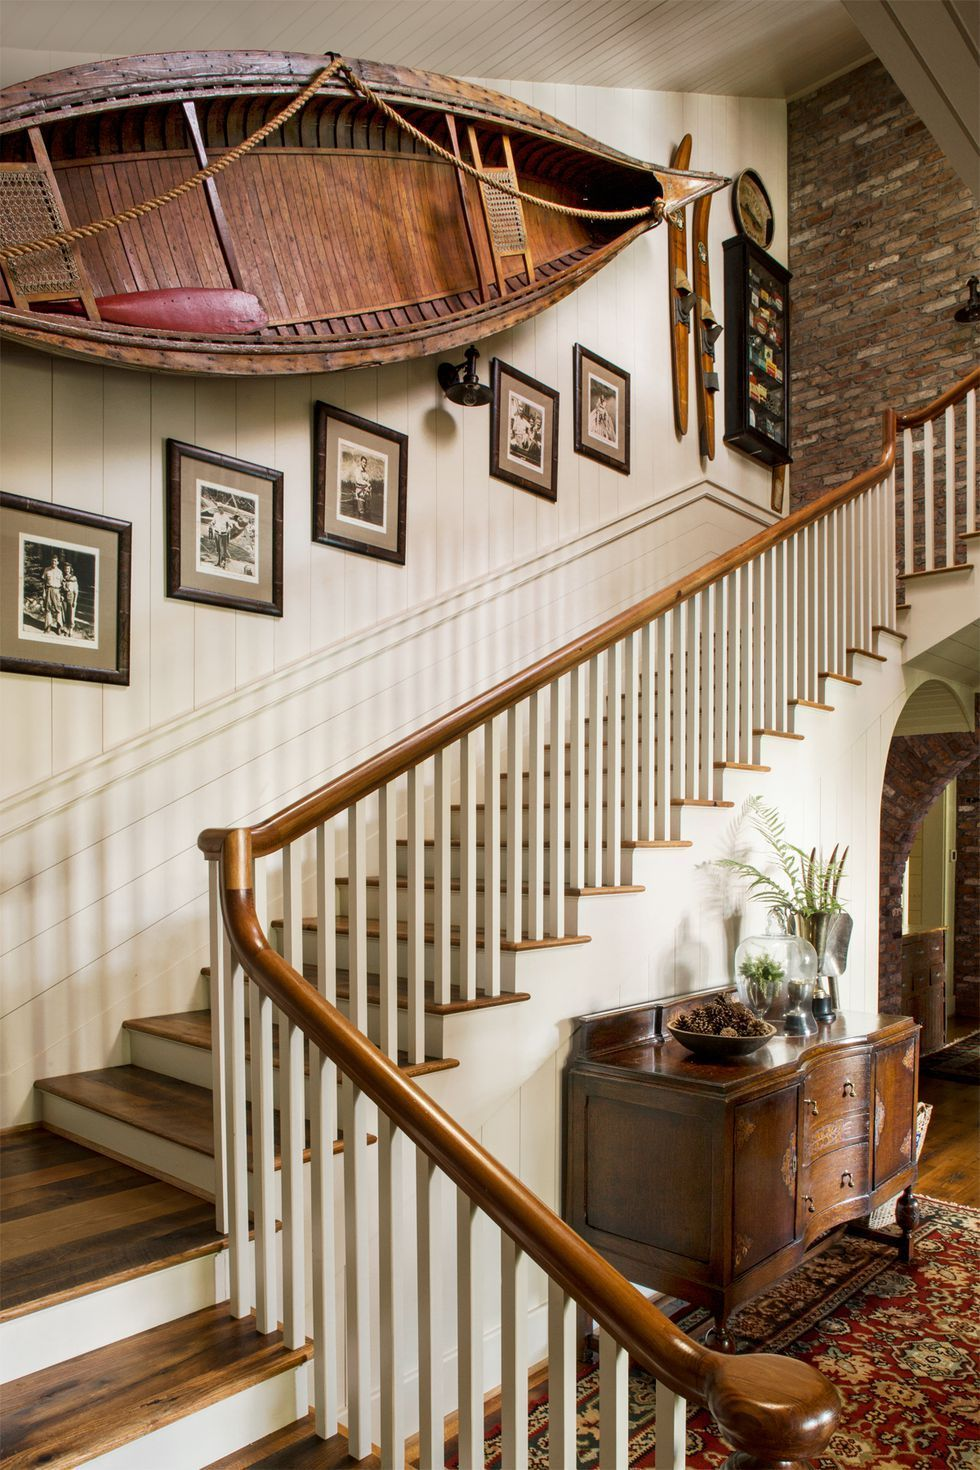 South Carolina Lake House Cabin Rustic And Timeless Decorating Ideas